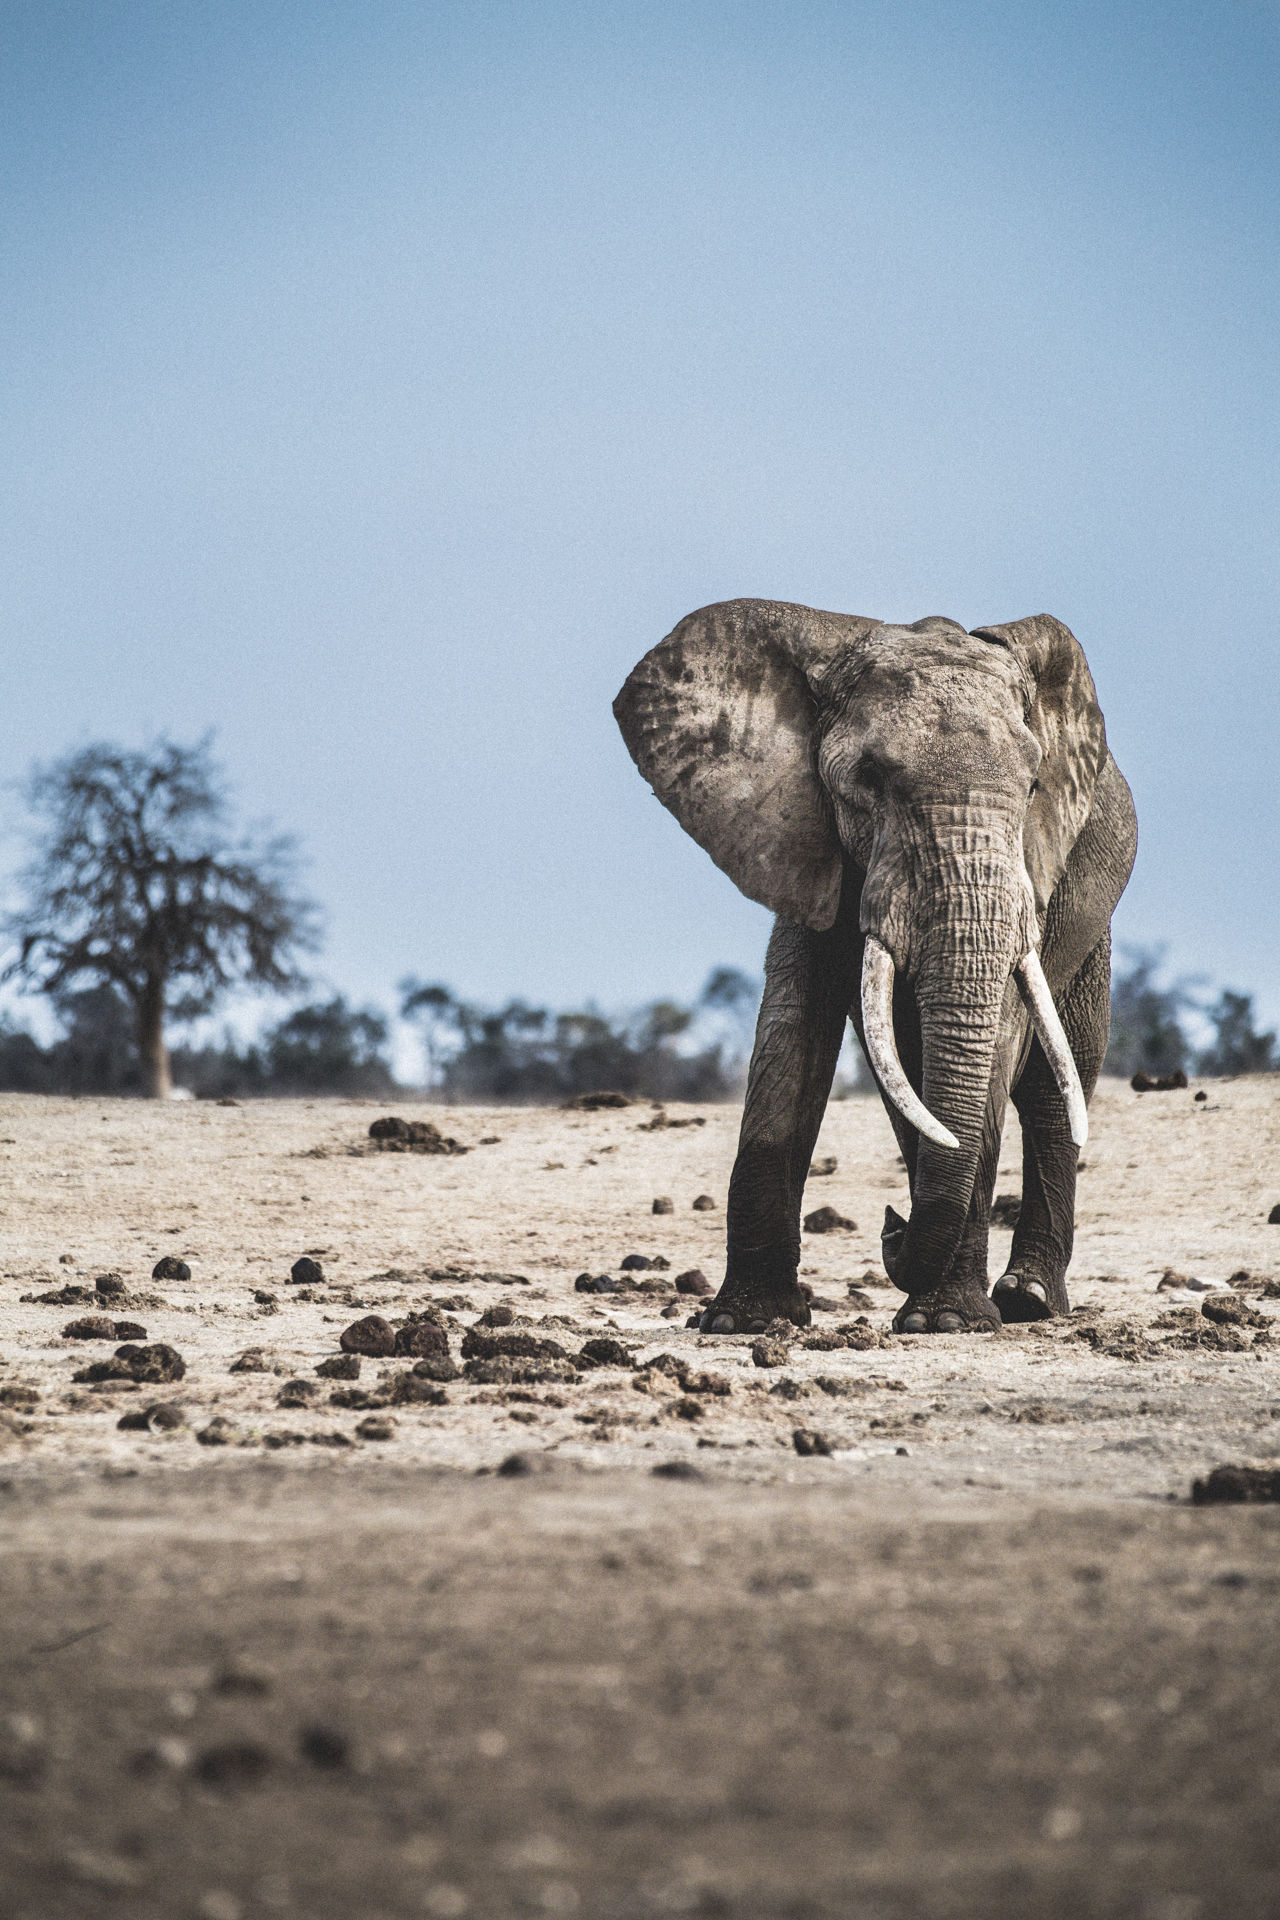 The Vigil and the Tree African Elephant Animal Wildlife Animals In The Wild Day Elephant Full Length Ken Kenya Mammal Nature No People One Animal Outdoors Sand Sky Standing Tree TSA Tsavo EyeEmNewHere Fresh On Market 2017